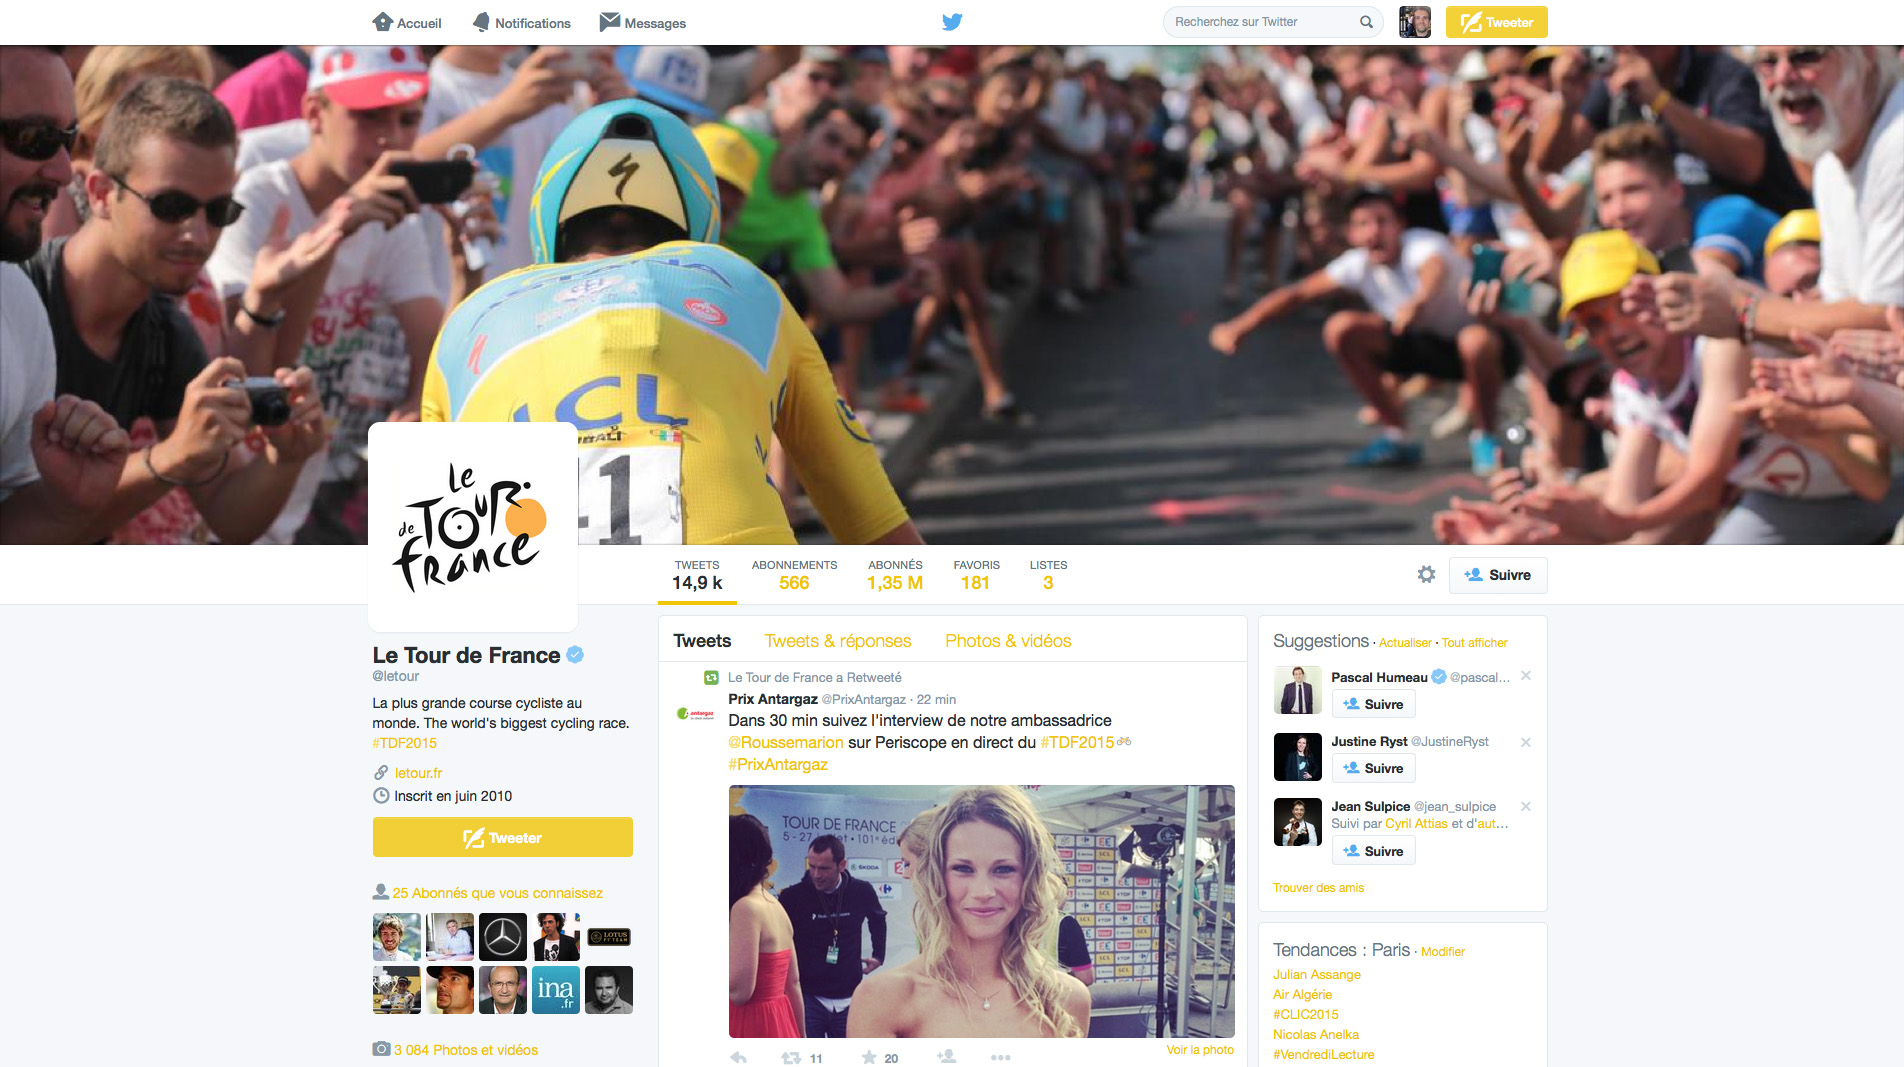 How to follow the 2015 Tour de France on Twitter